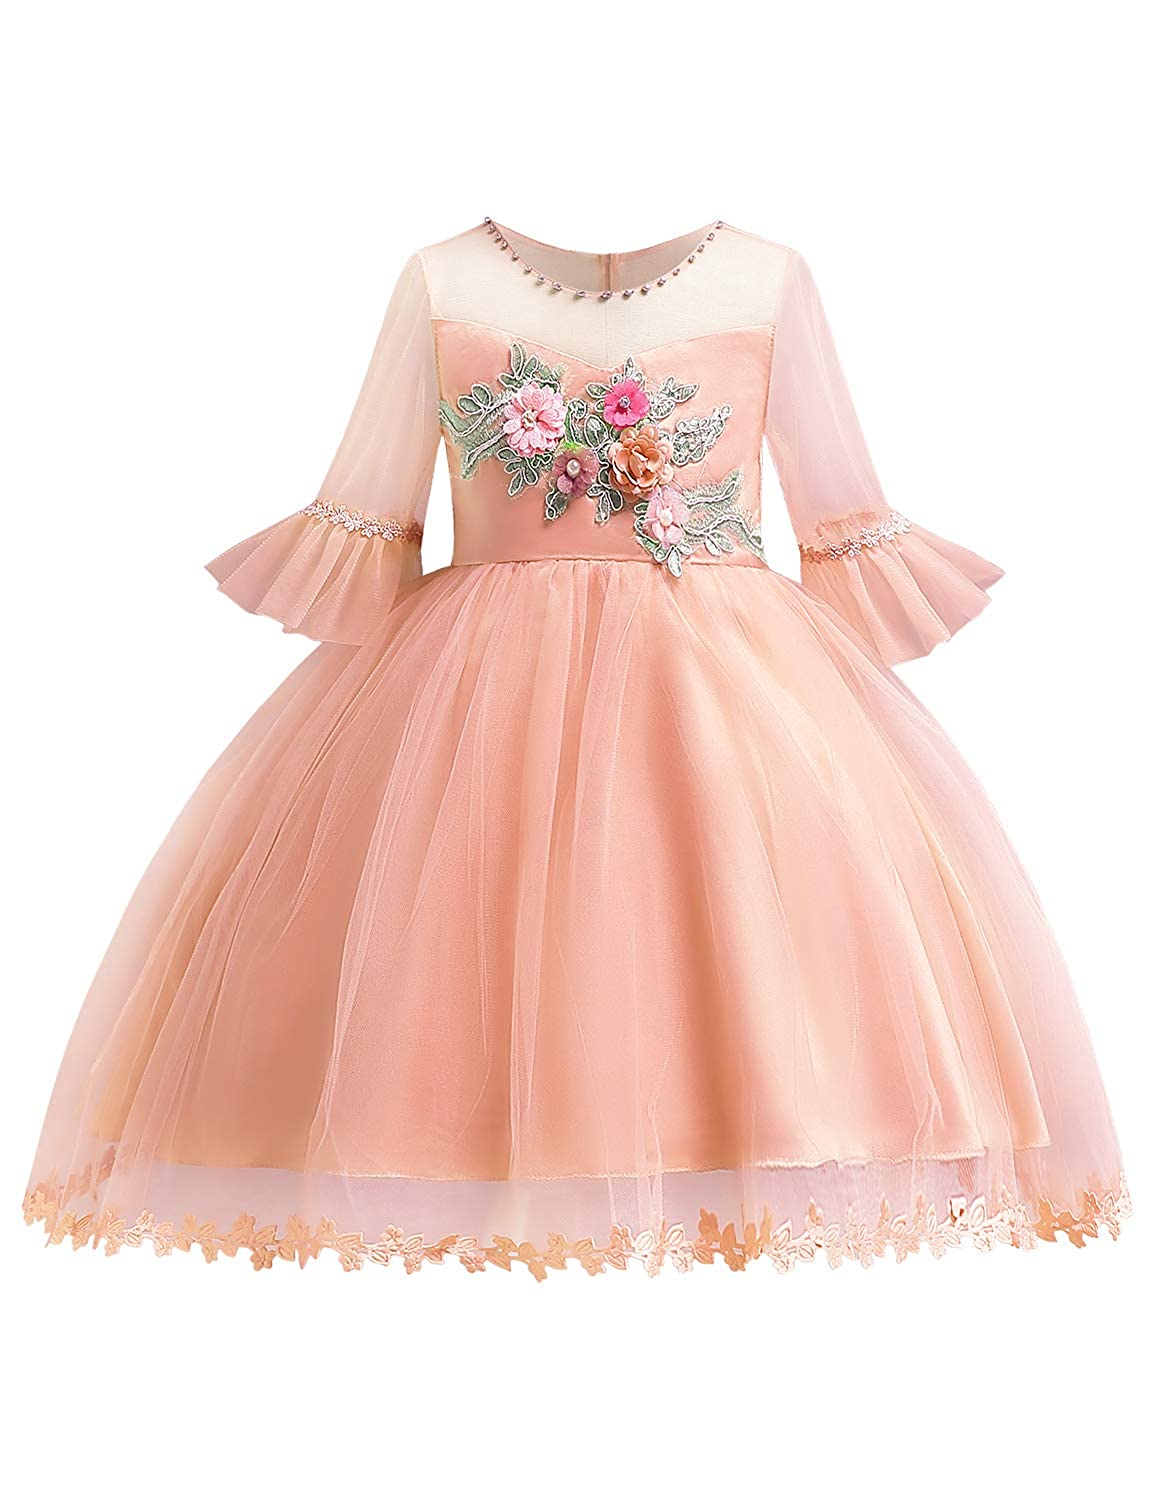 d92f13cf93 Top 10 wholesale Orange Tulle Flower Girl Dress - Chinabrands.com